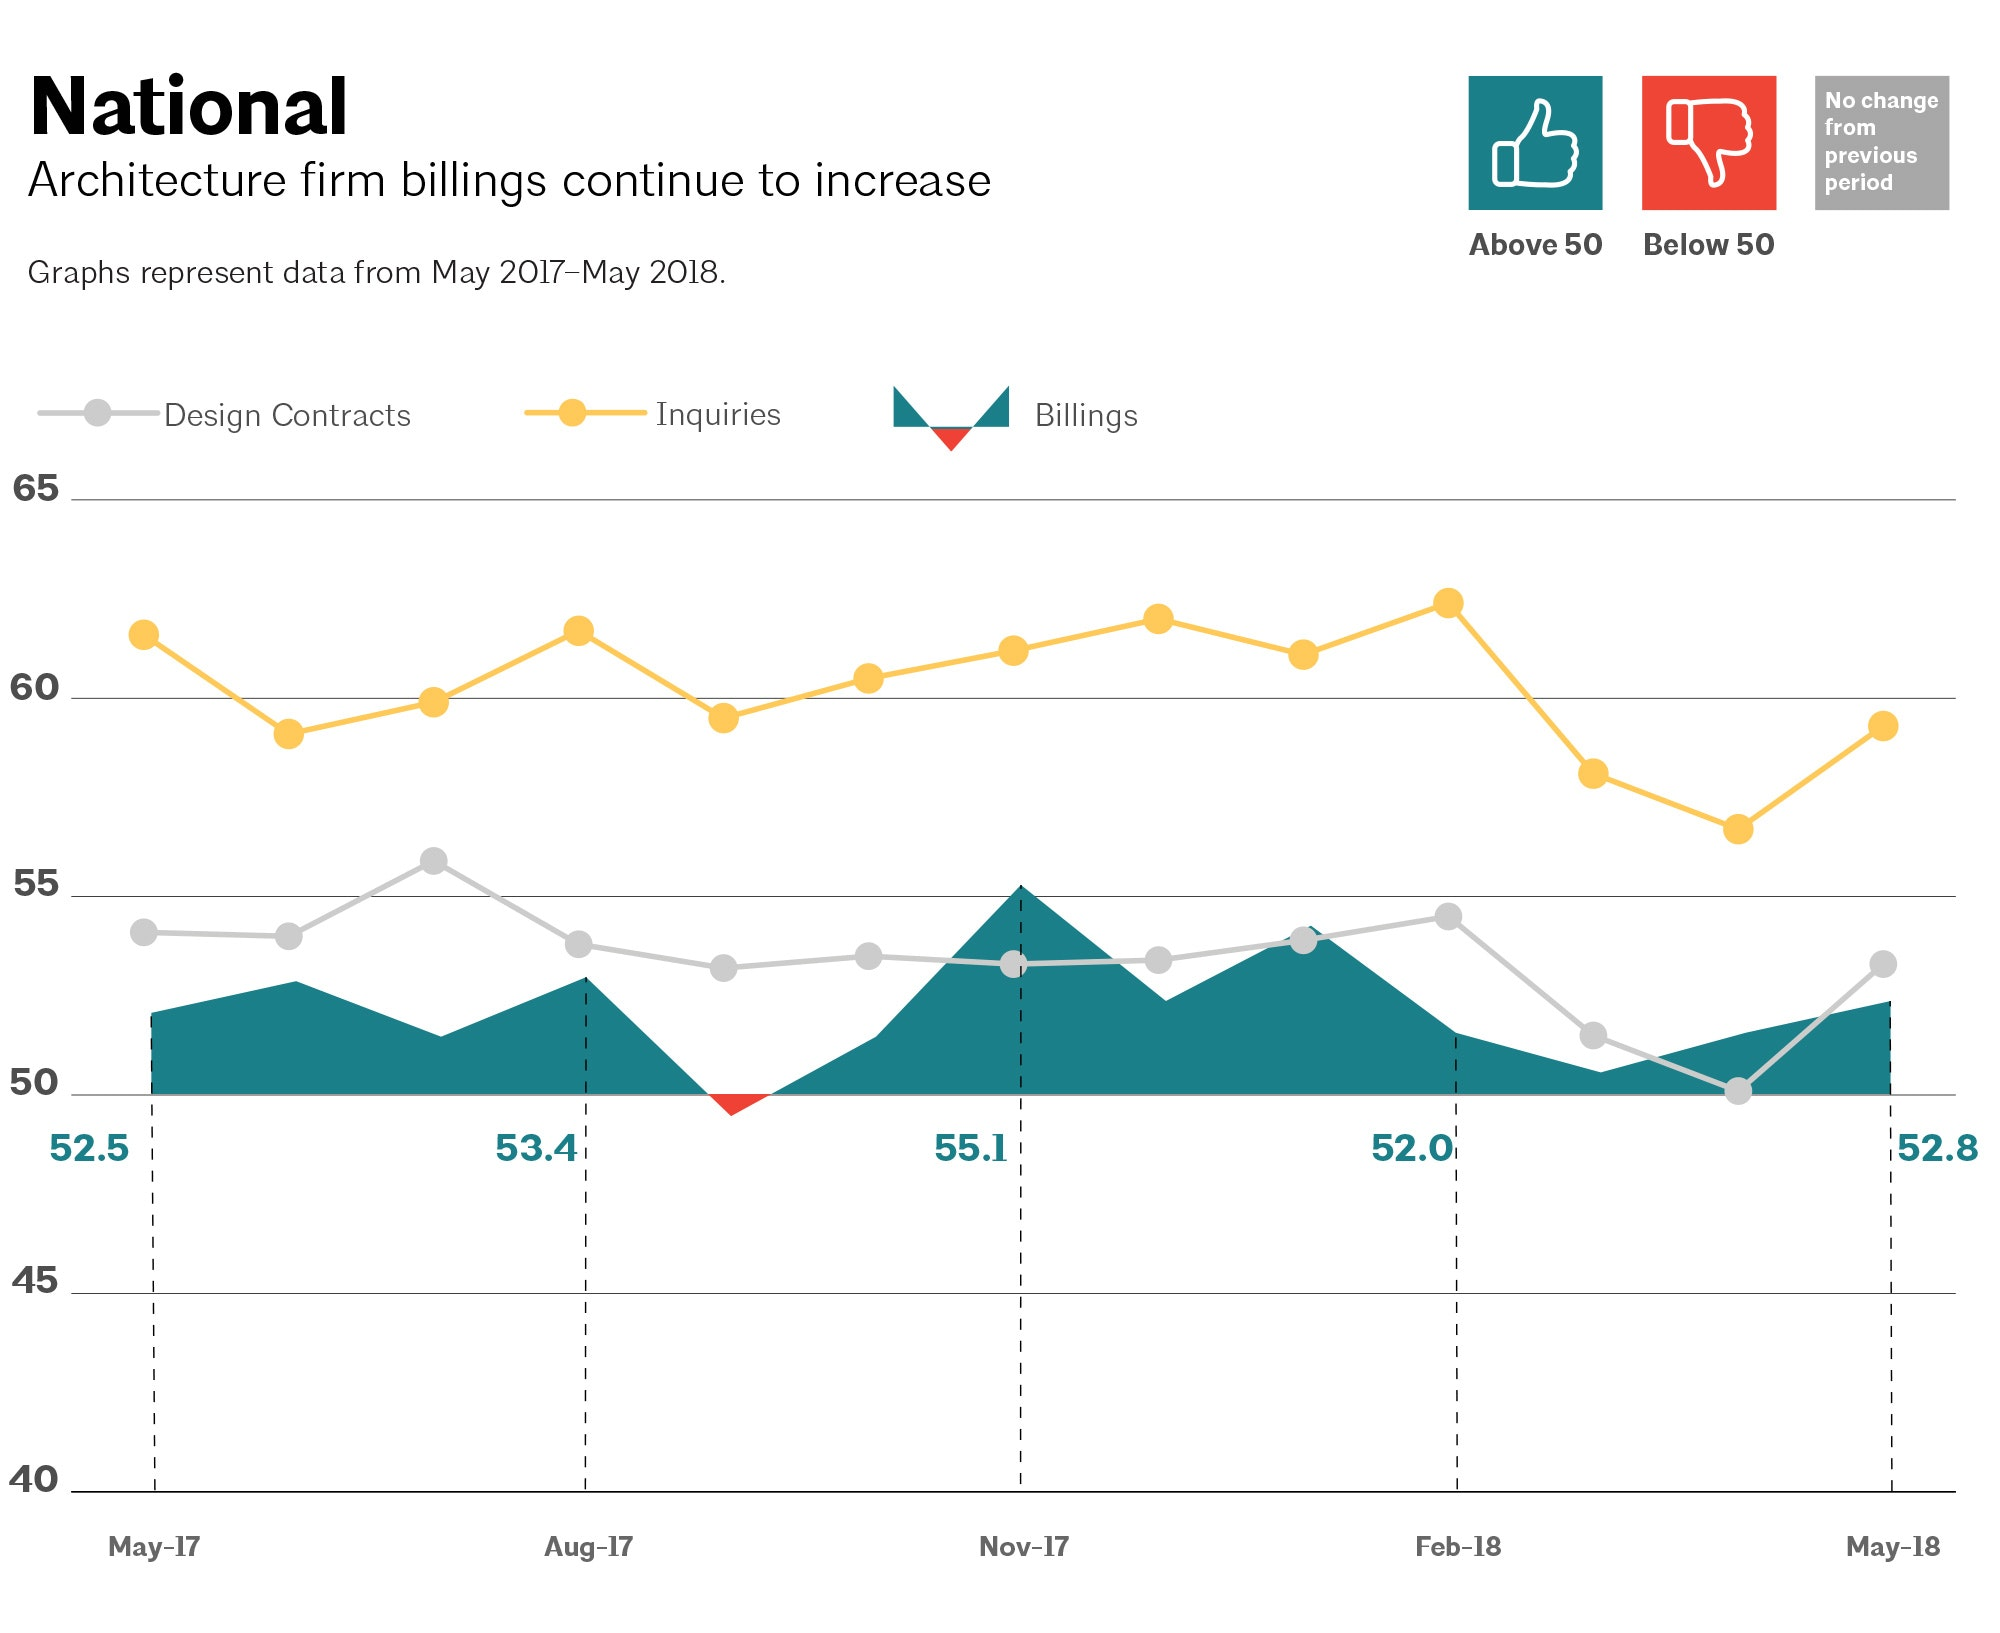 This AIA Graph Illustrates National Architecture Firm Billings, Design  Contracts, And Inquiries Between May